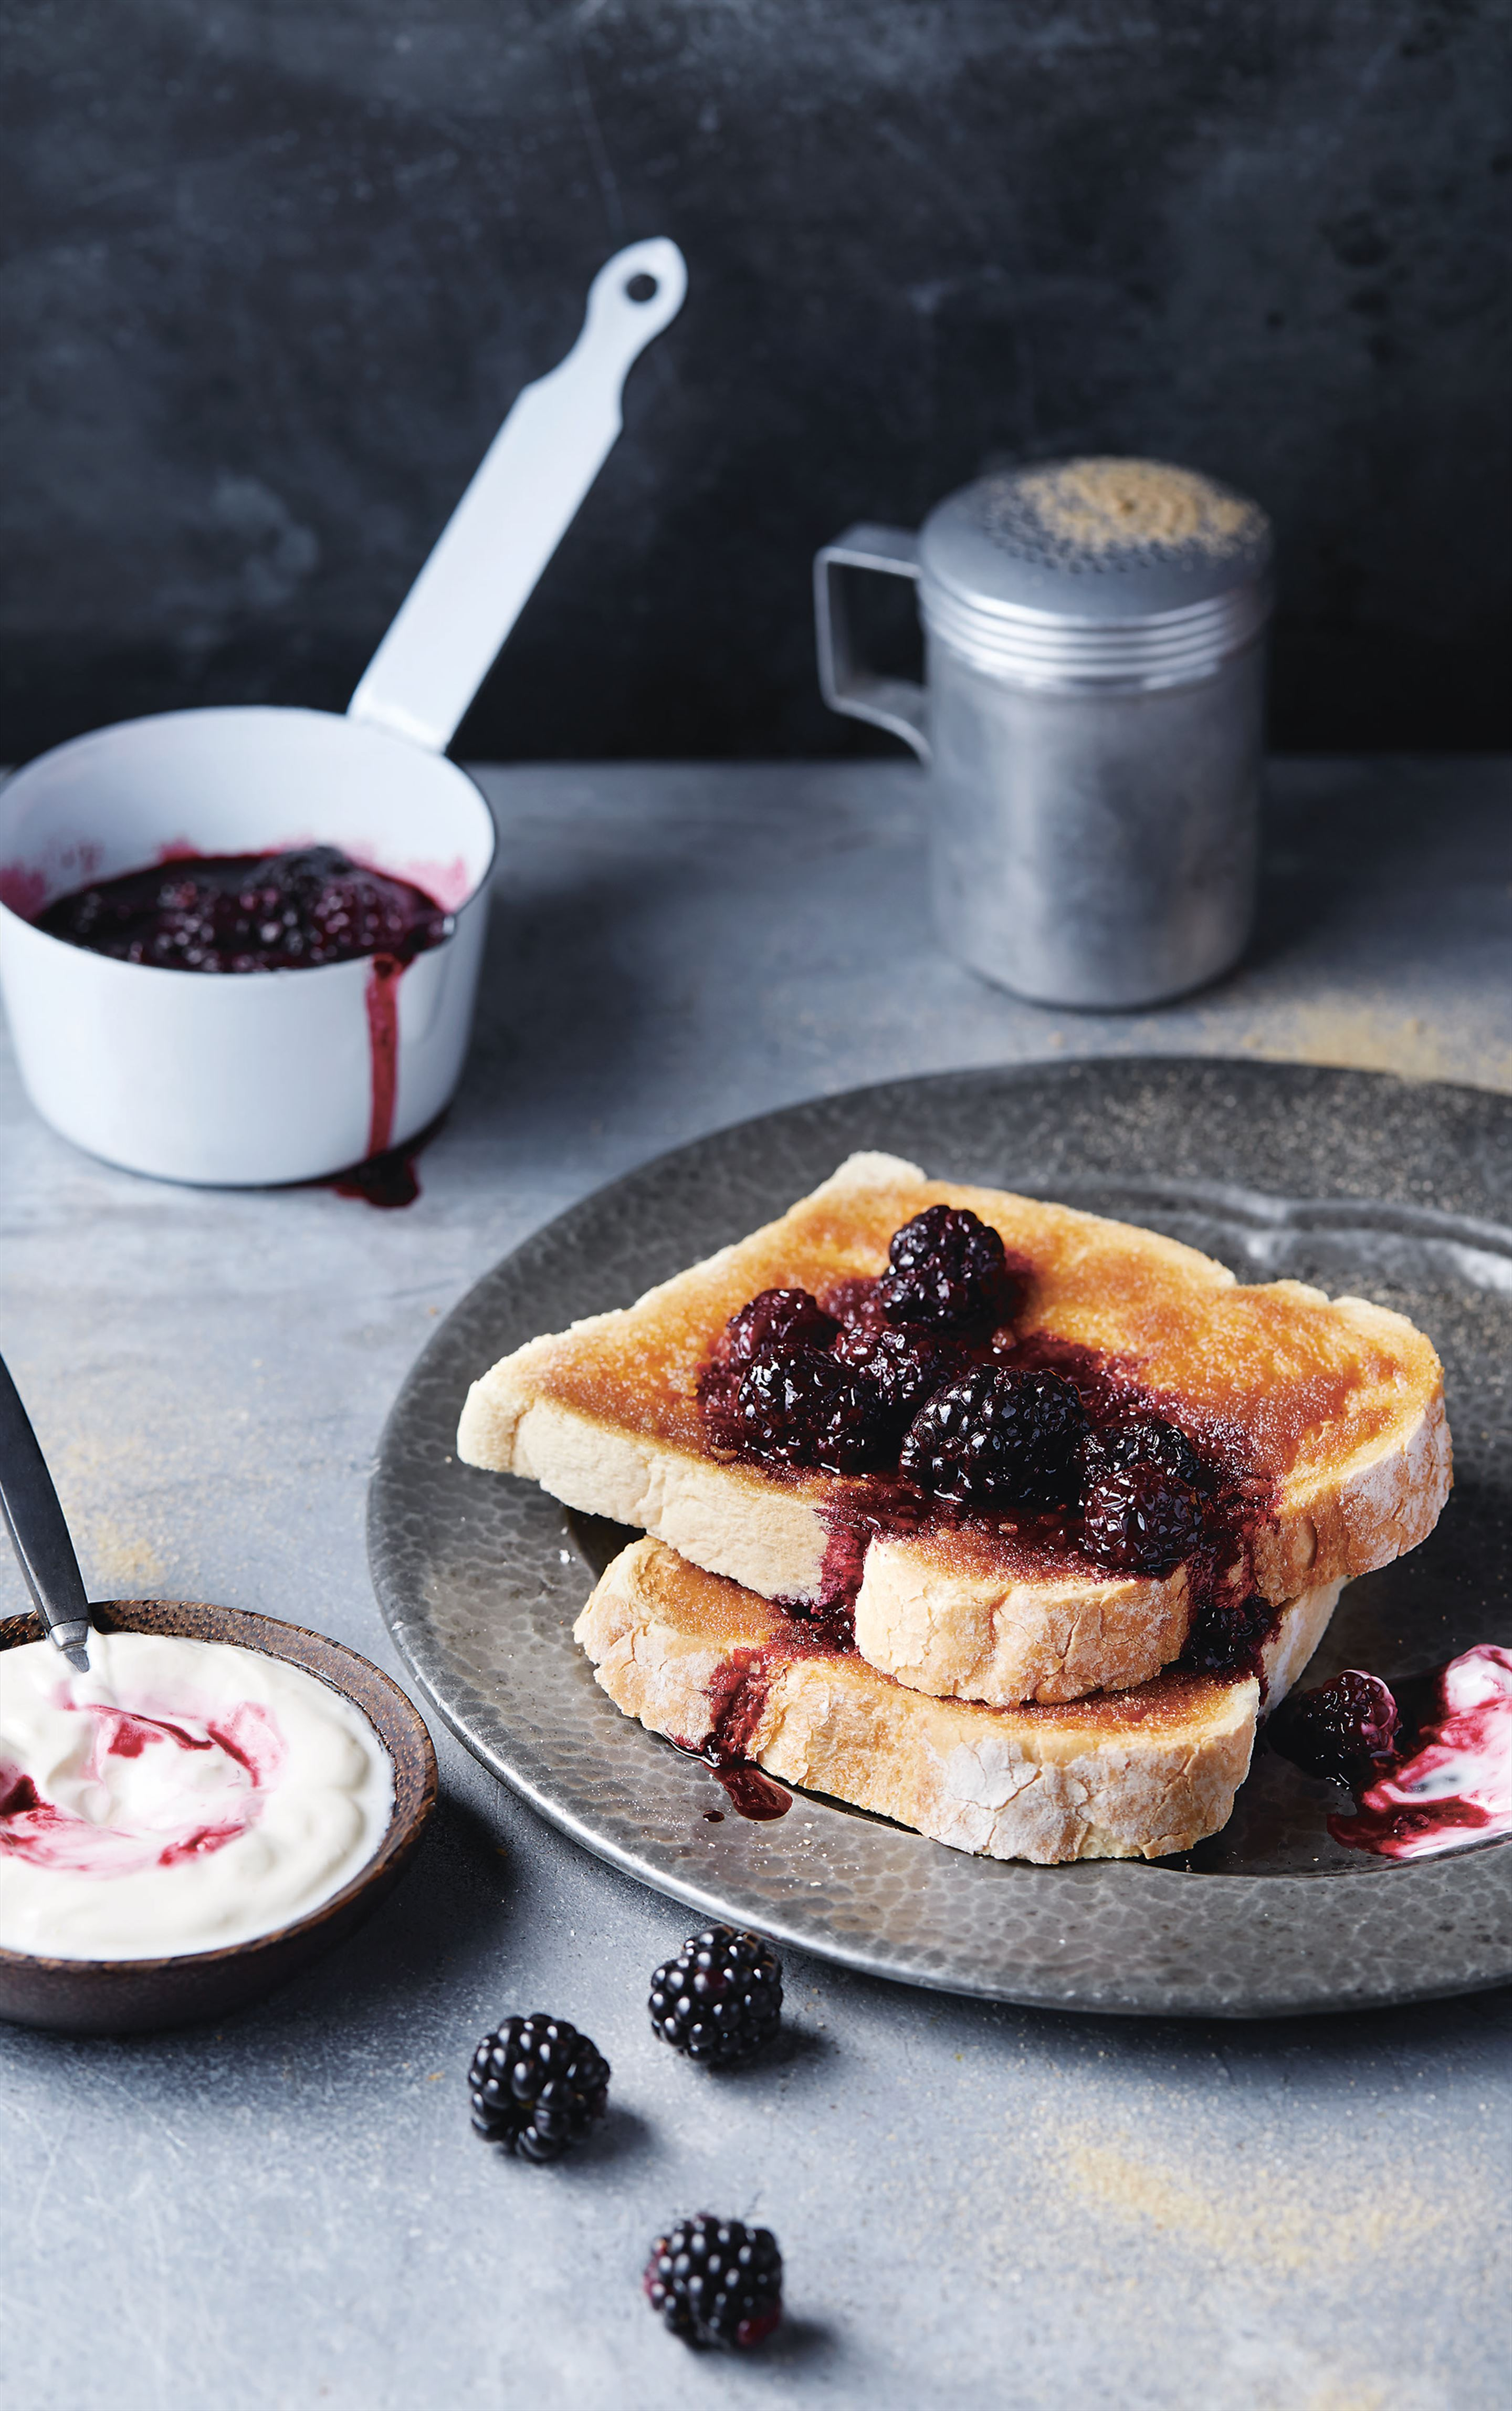 Chunky cinnamon toasts with blackberry compôte